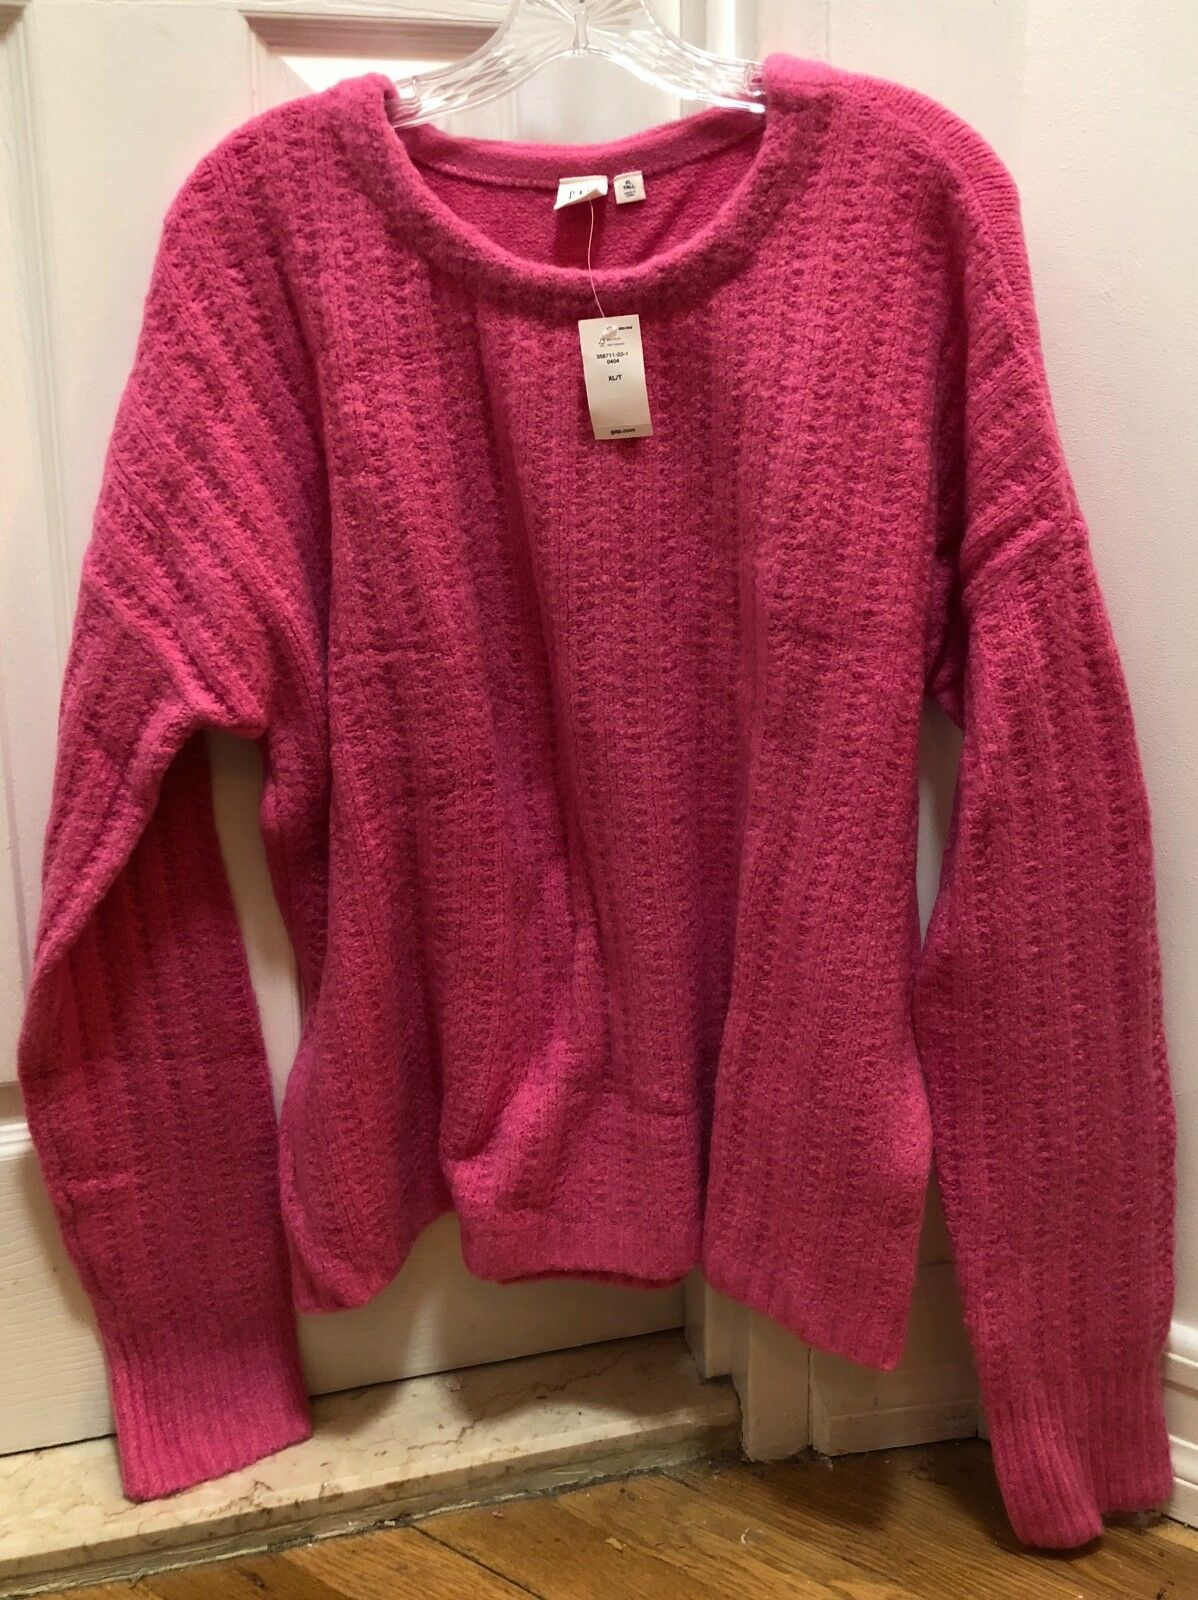 (NEW WITH TAGS) Gorgeous Candy Pink GAP Cabled Sweater XL T